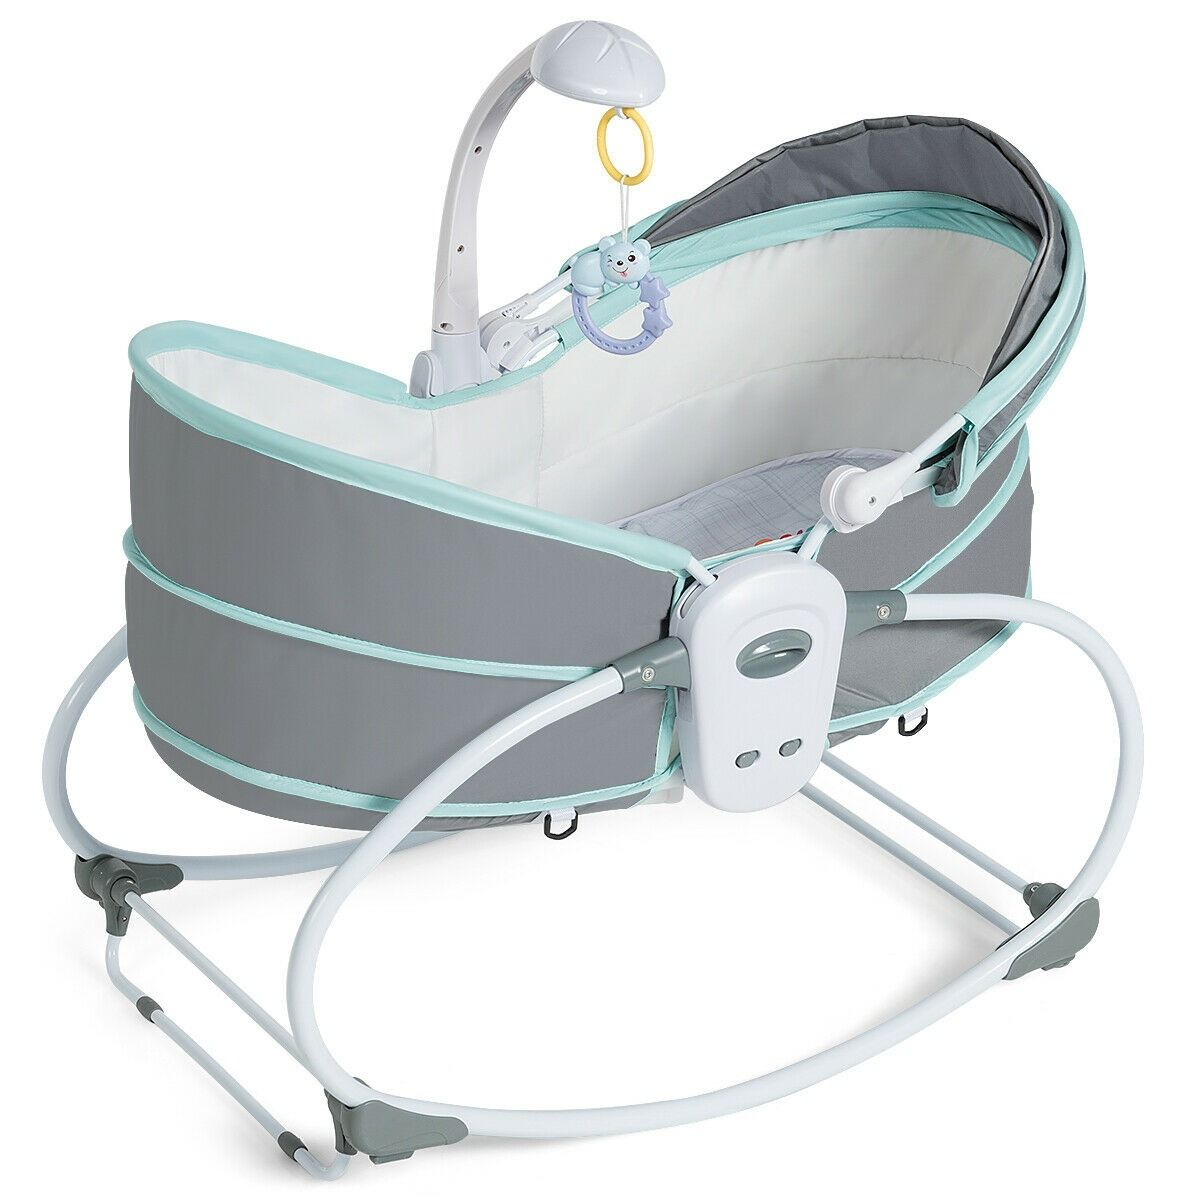 5 In 1 Portable Baby Multi Functional Crib With Canopy Toys